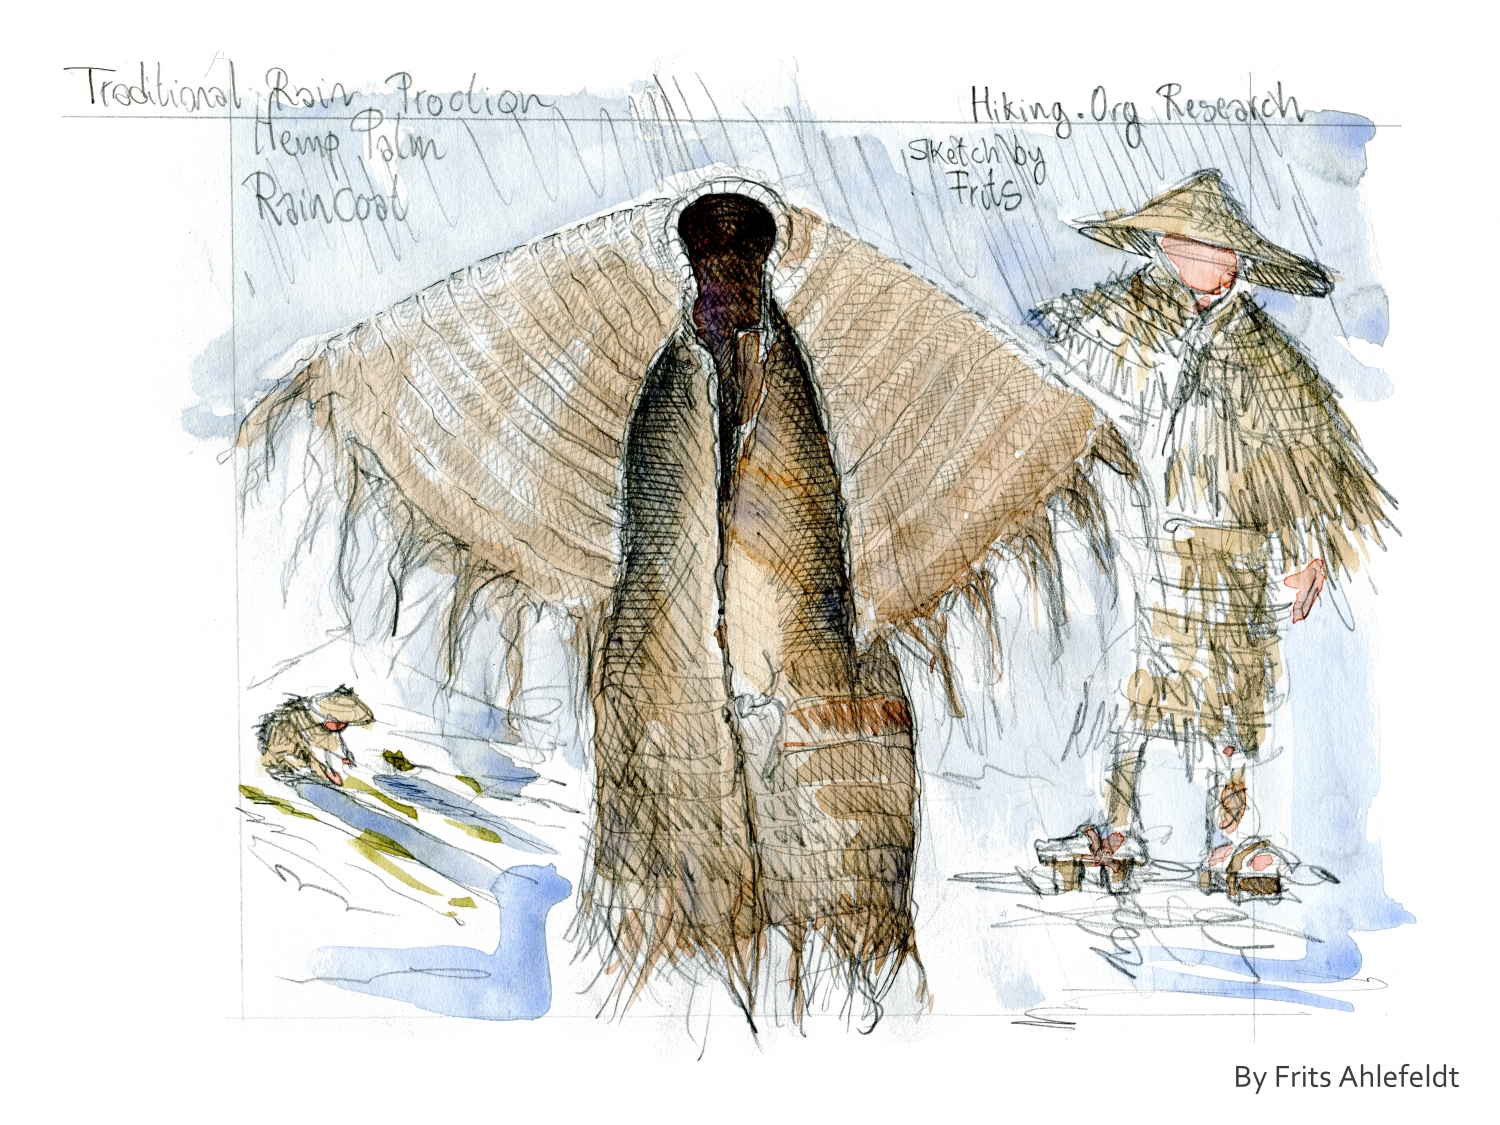 Traditional Japanese Rain jacket - Research sketch by Frits Ahlefeldt